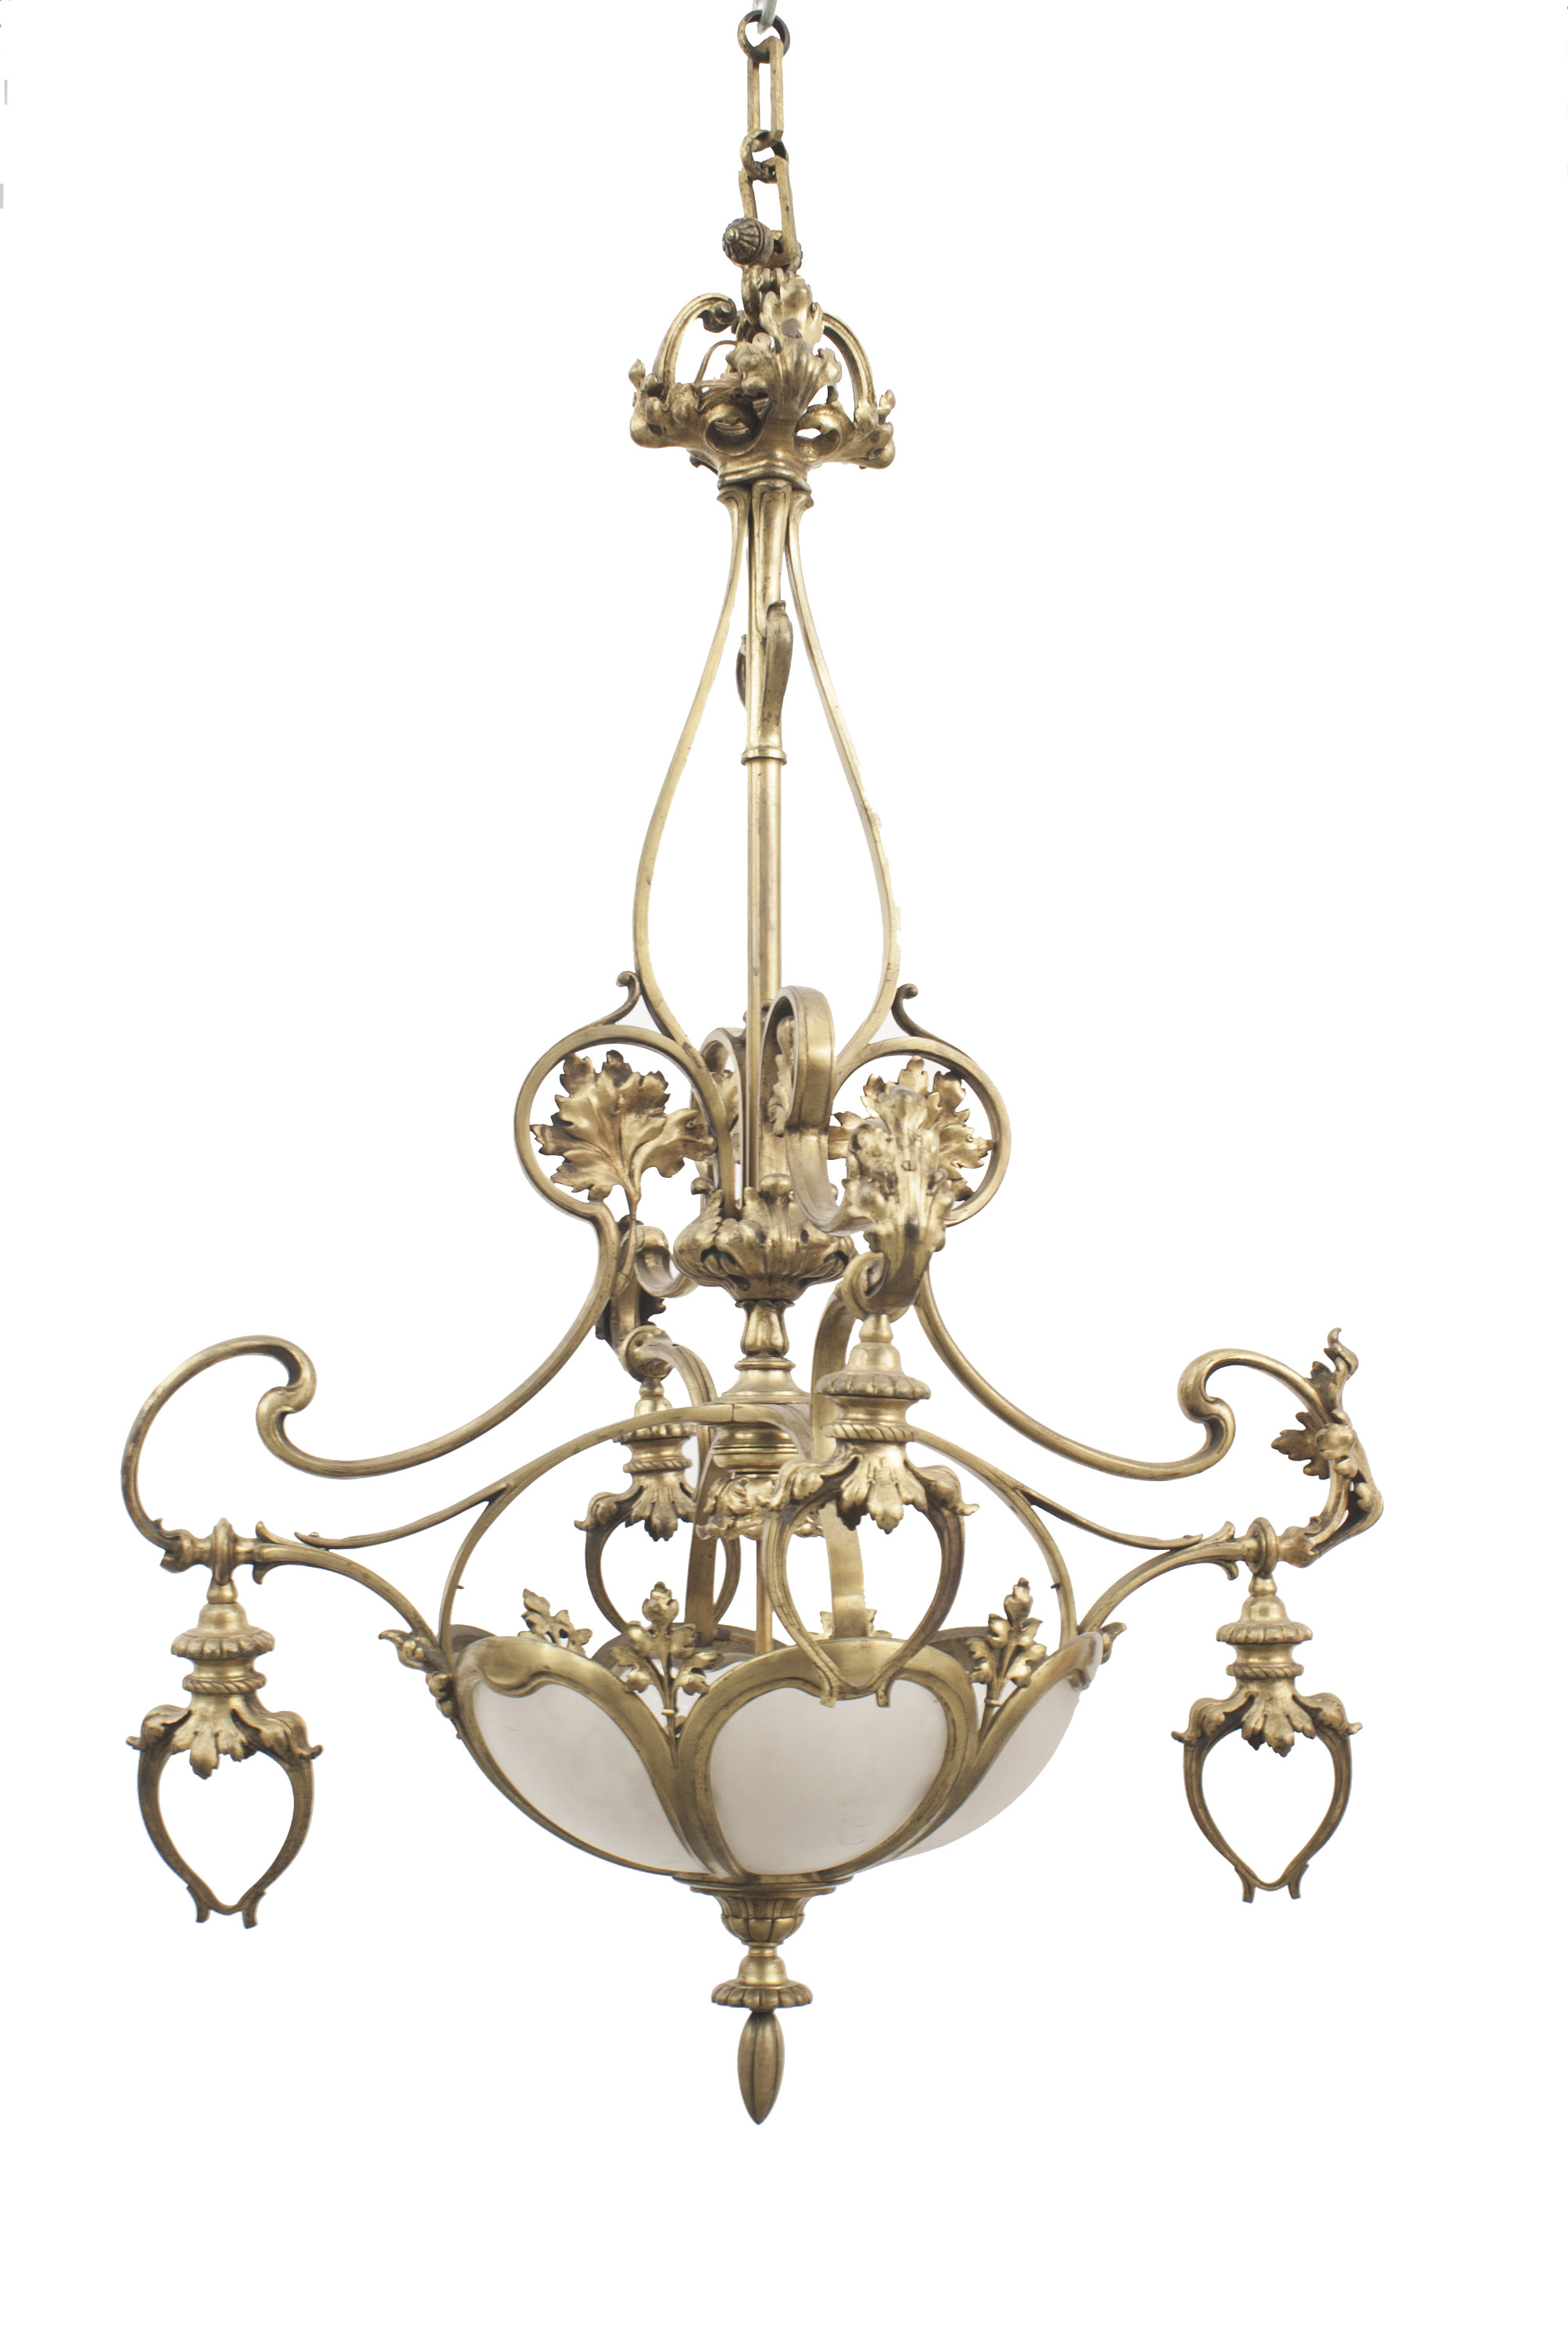 French Art Nouveau Bronze Dore 4 Arm Chandelier With 6 Shaped Frosted Glass Panels